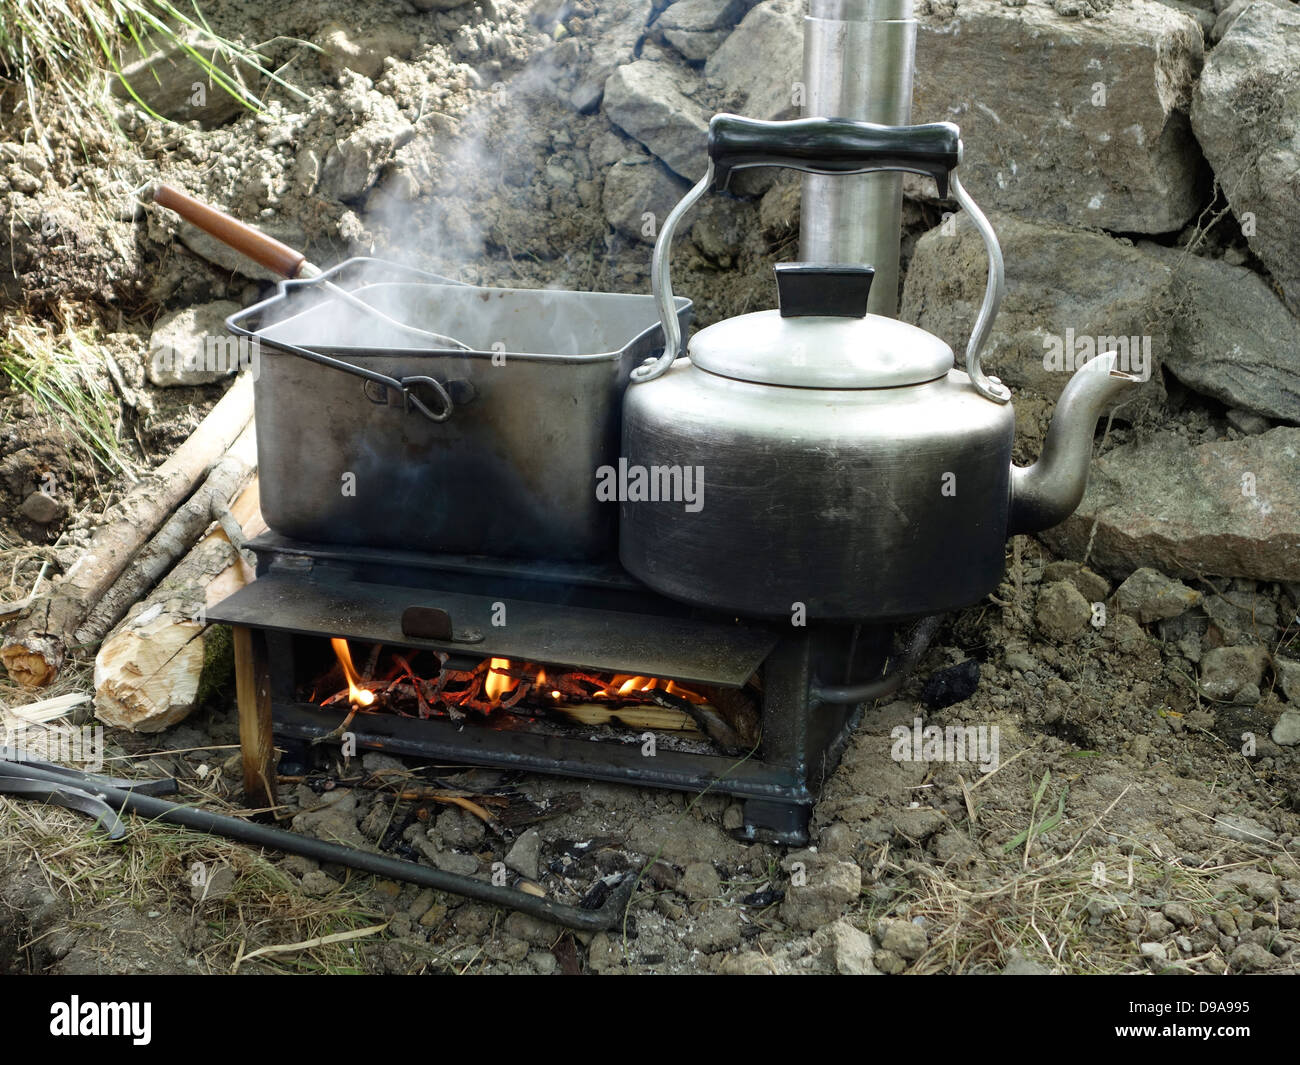 An improvised simple small wood-burning stove as used in trenches by British military in ww2. Re-enactment. - Stock Image